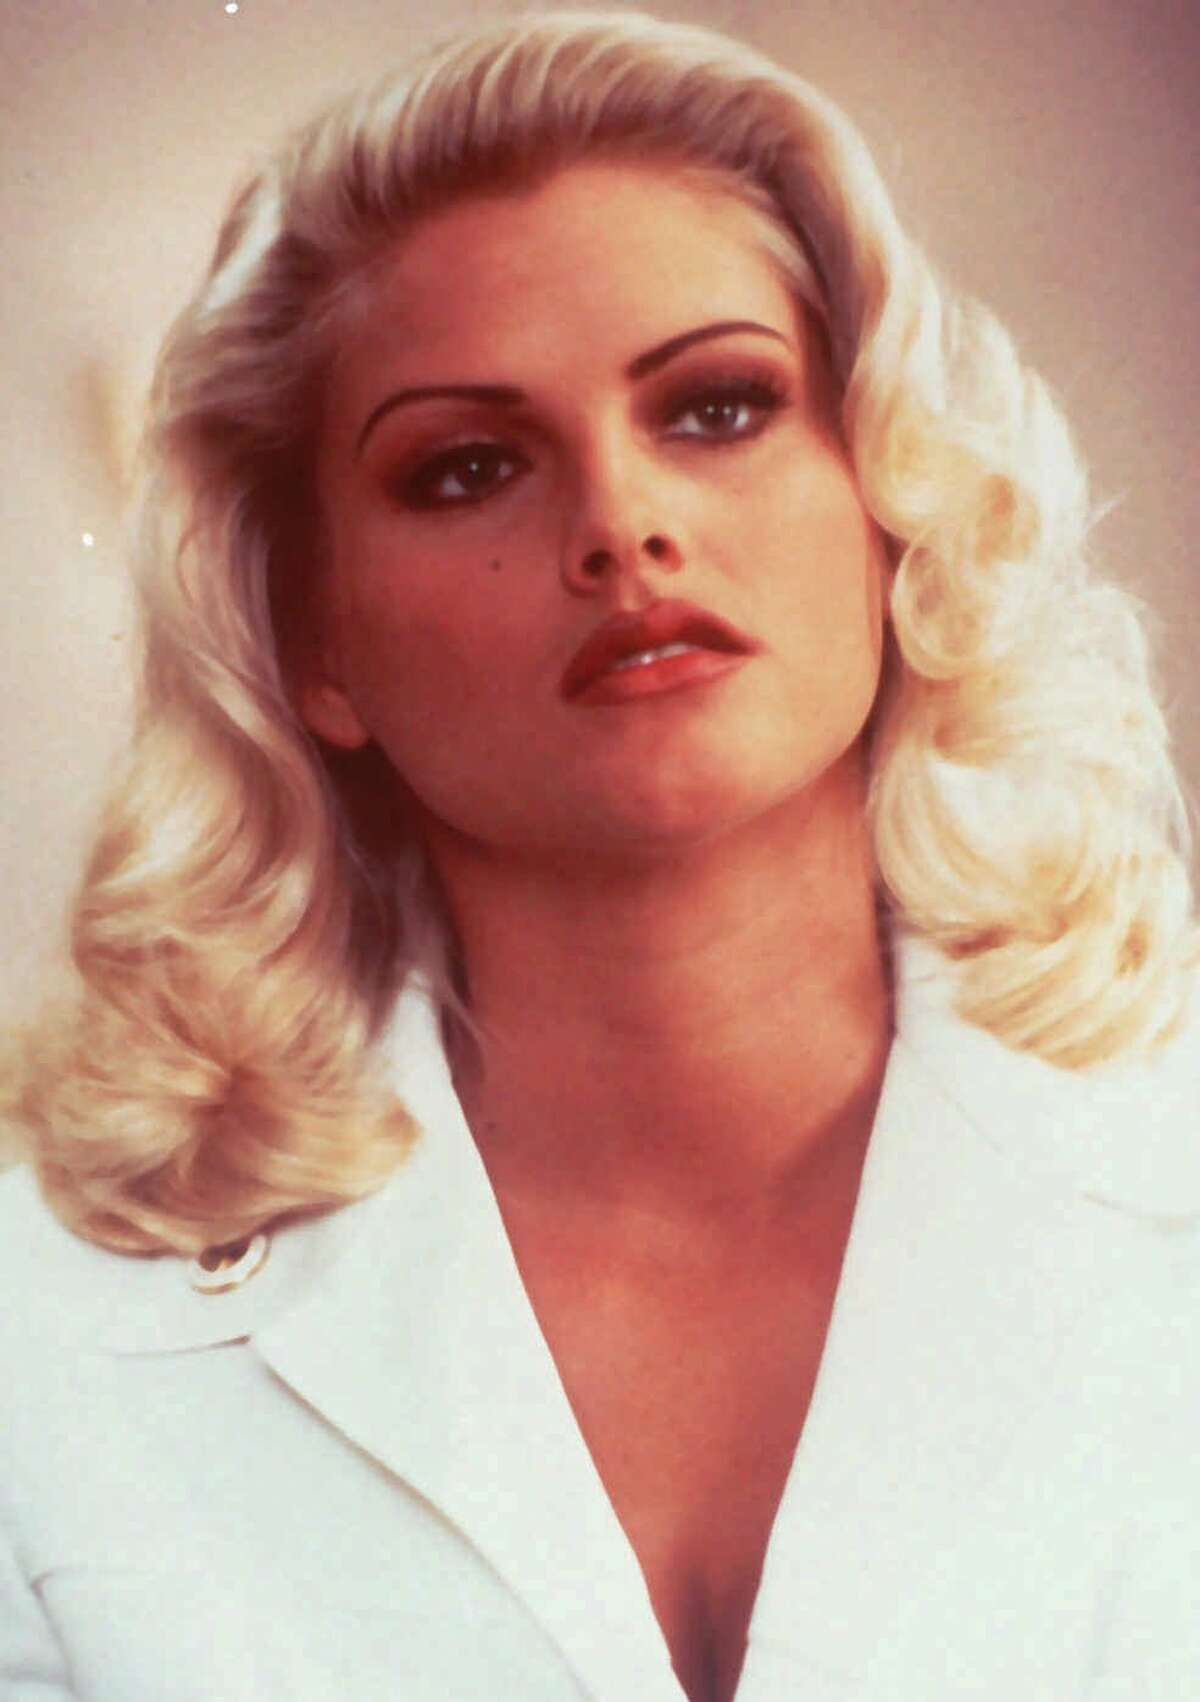 Timeline of Anna Nicole Smith's life Anna Nicole Smith, the Texas-born stripper-turned-model and reality star, was one of America's most beloved bombshells. Continue clicking to see the timeline of the beauty's turbulent past and the legacy she's left behind.